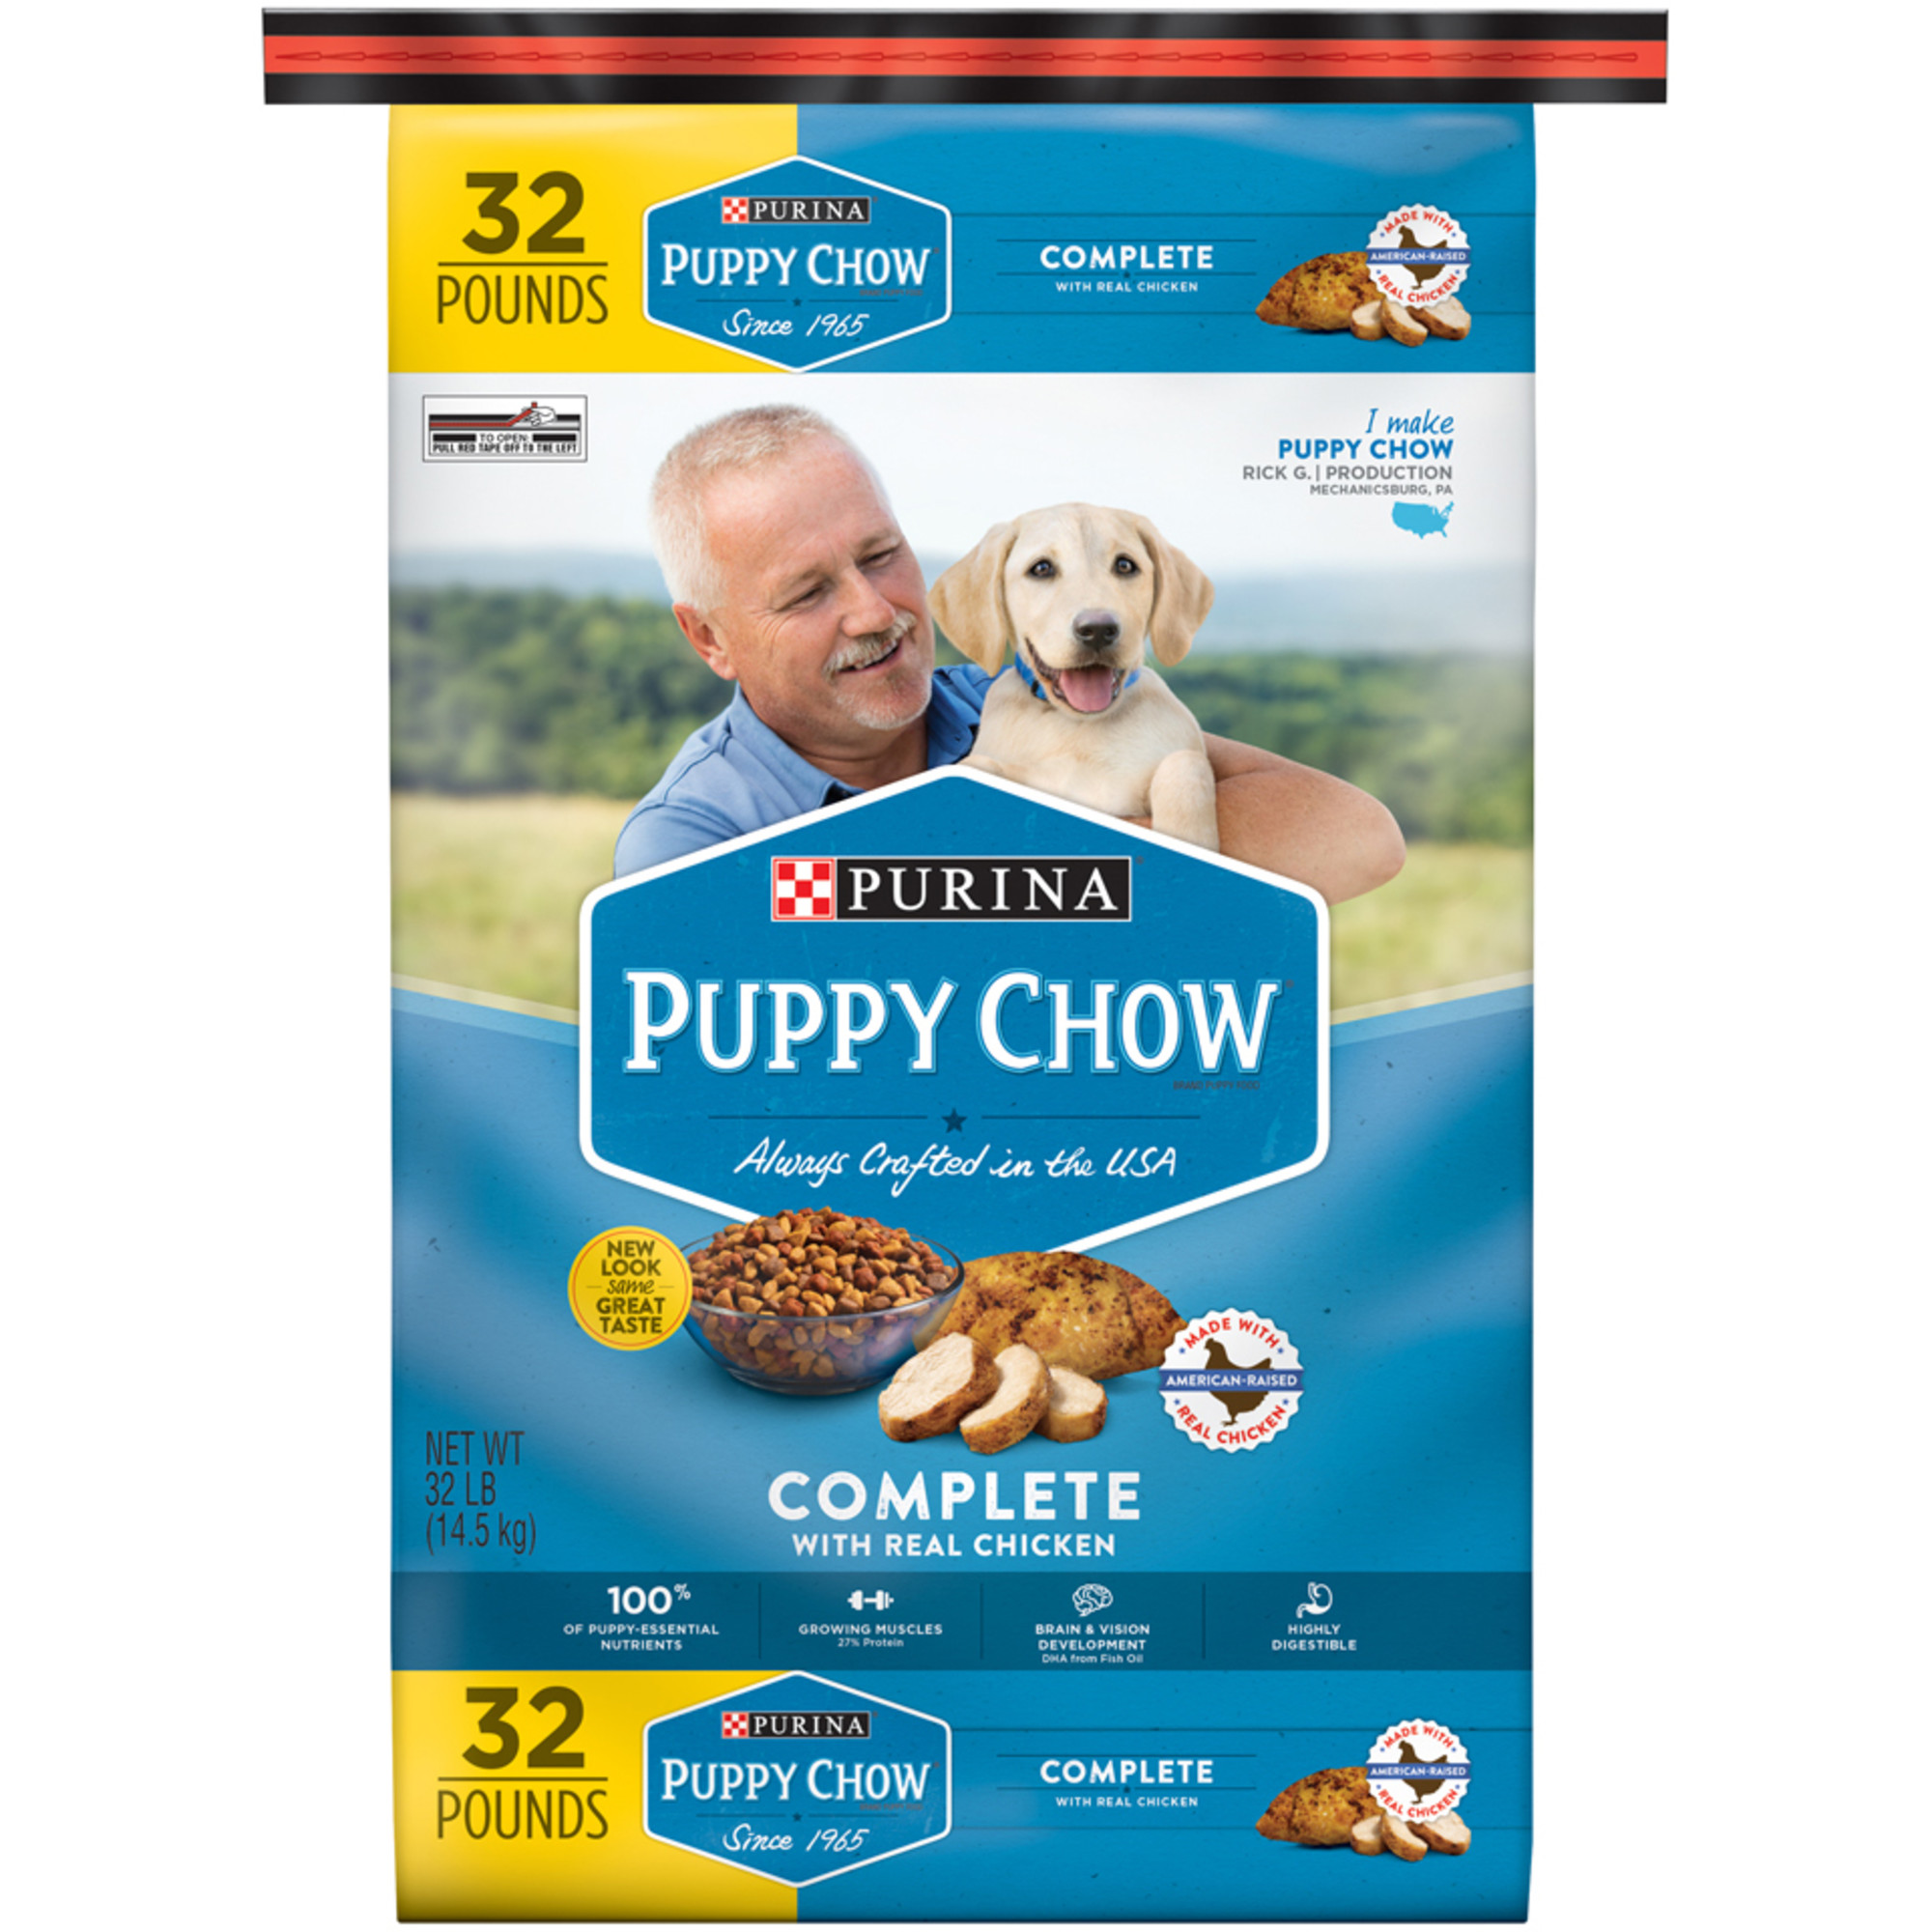 Purina Puppy Chow Complete & Balanced Dry Dog Food, 32 Lb